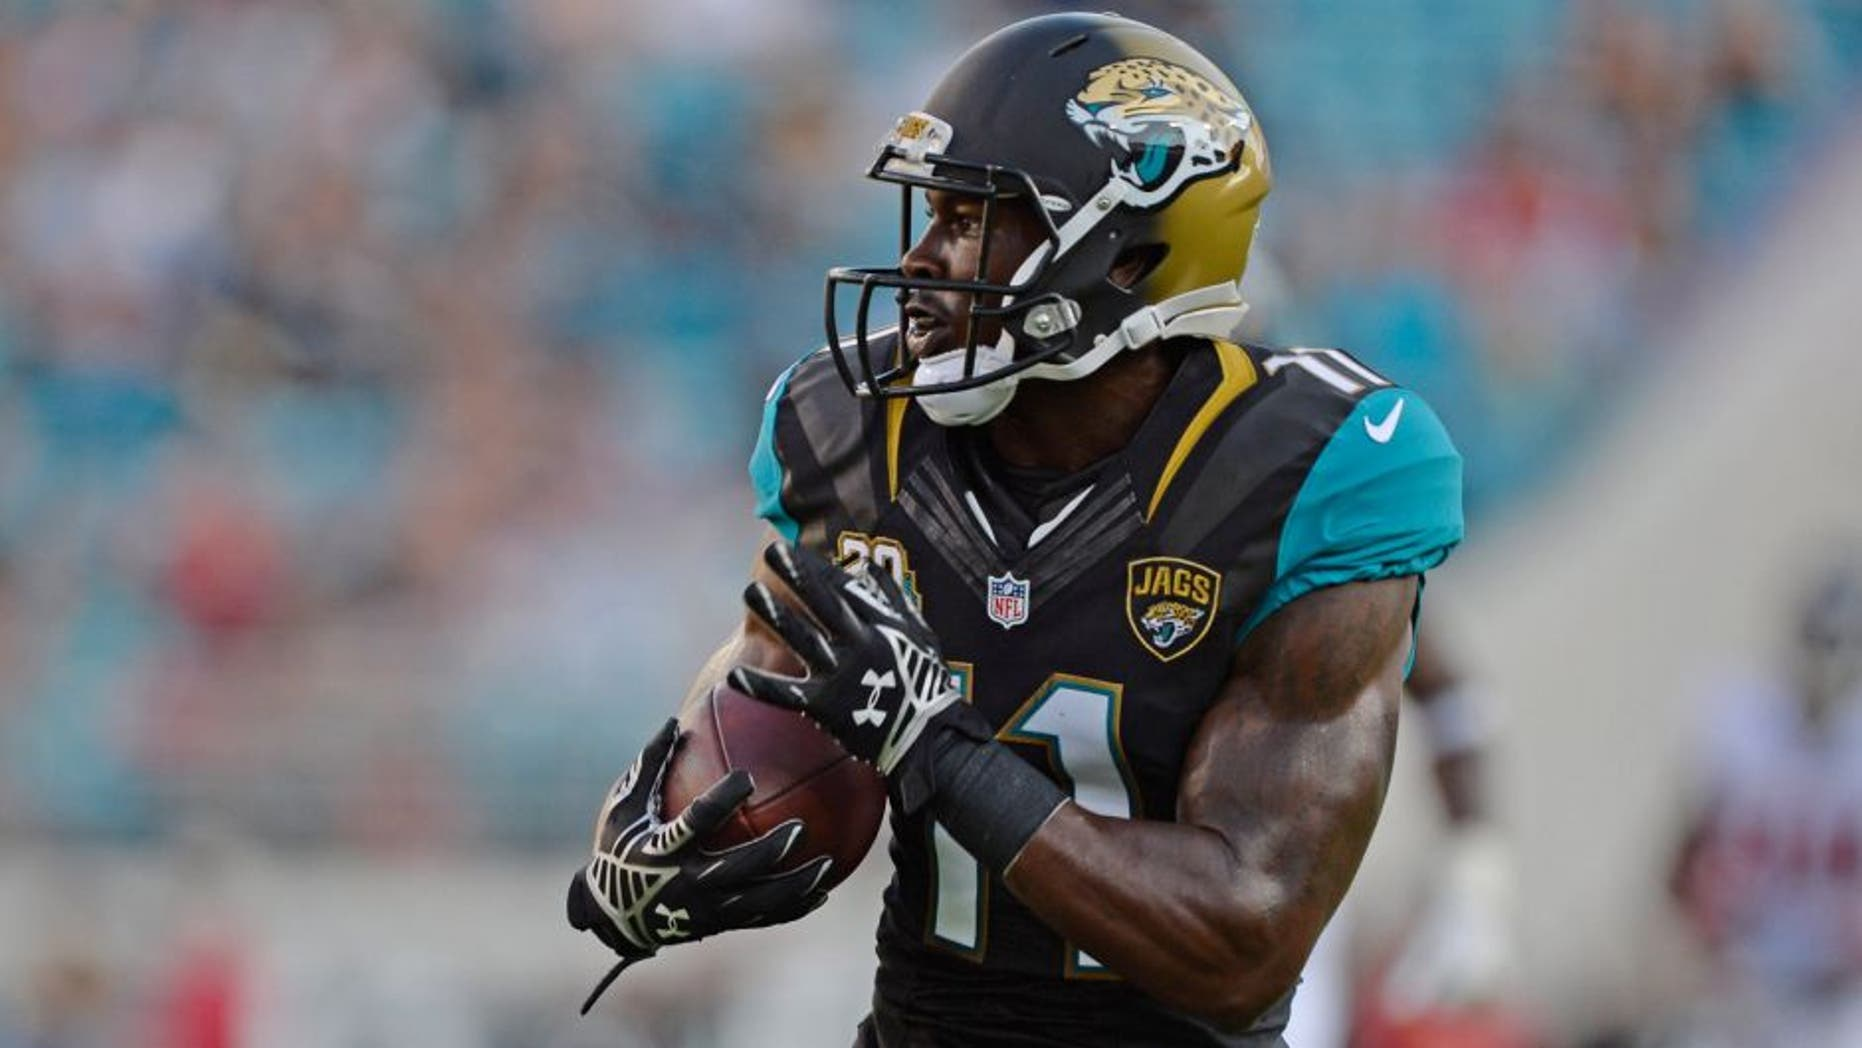 Aug 28, 2014; Jacksonville, FL, USA; Jacksonville Jaguar wide receiver Marqise Lee (11) catches a touchdown pass from quarterback Blake Bortles against the Atlanta Falcons during the 2nd quarter at EverBank Field. Mandatory Credit: Richard Dole-USA TODAY Sports